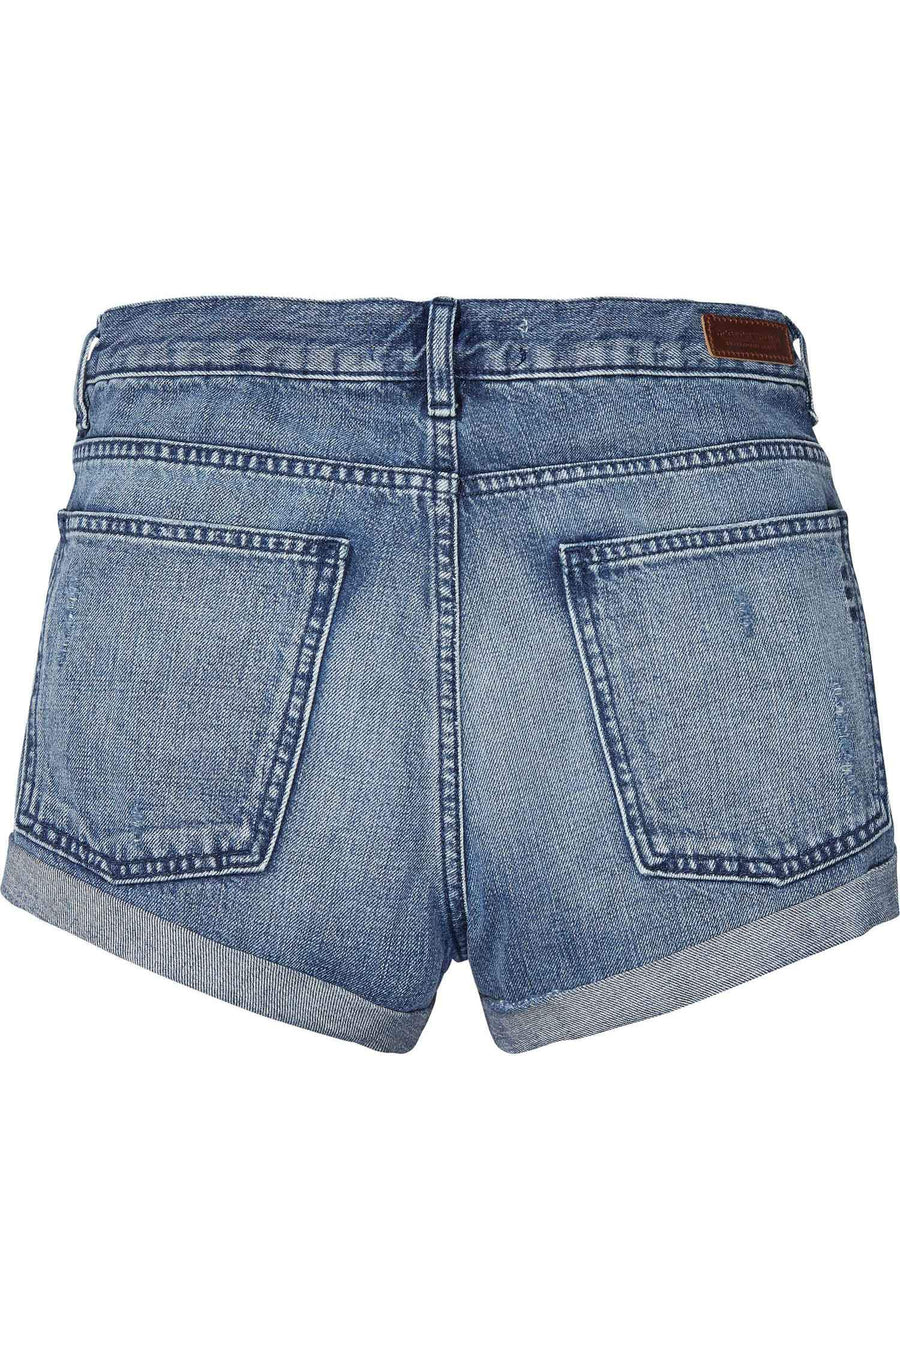 Denim Shorts in Ocean Reflection by Maison Scotch Frockaholics.com